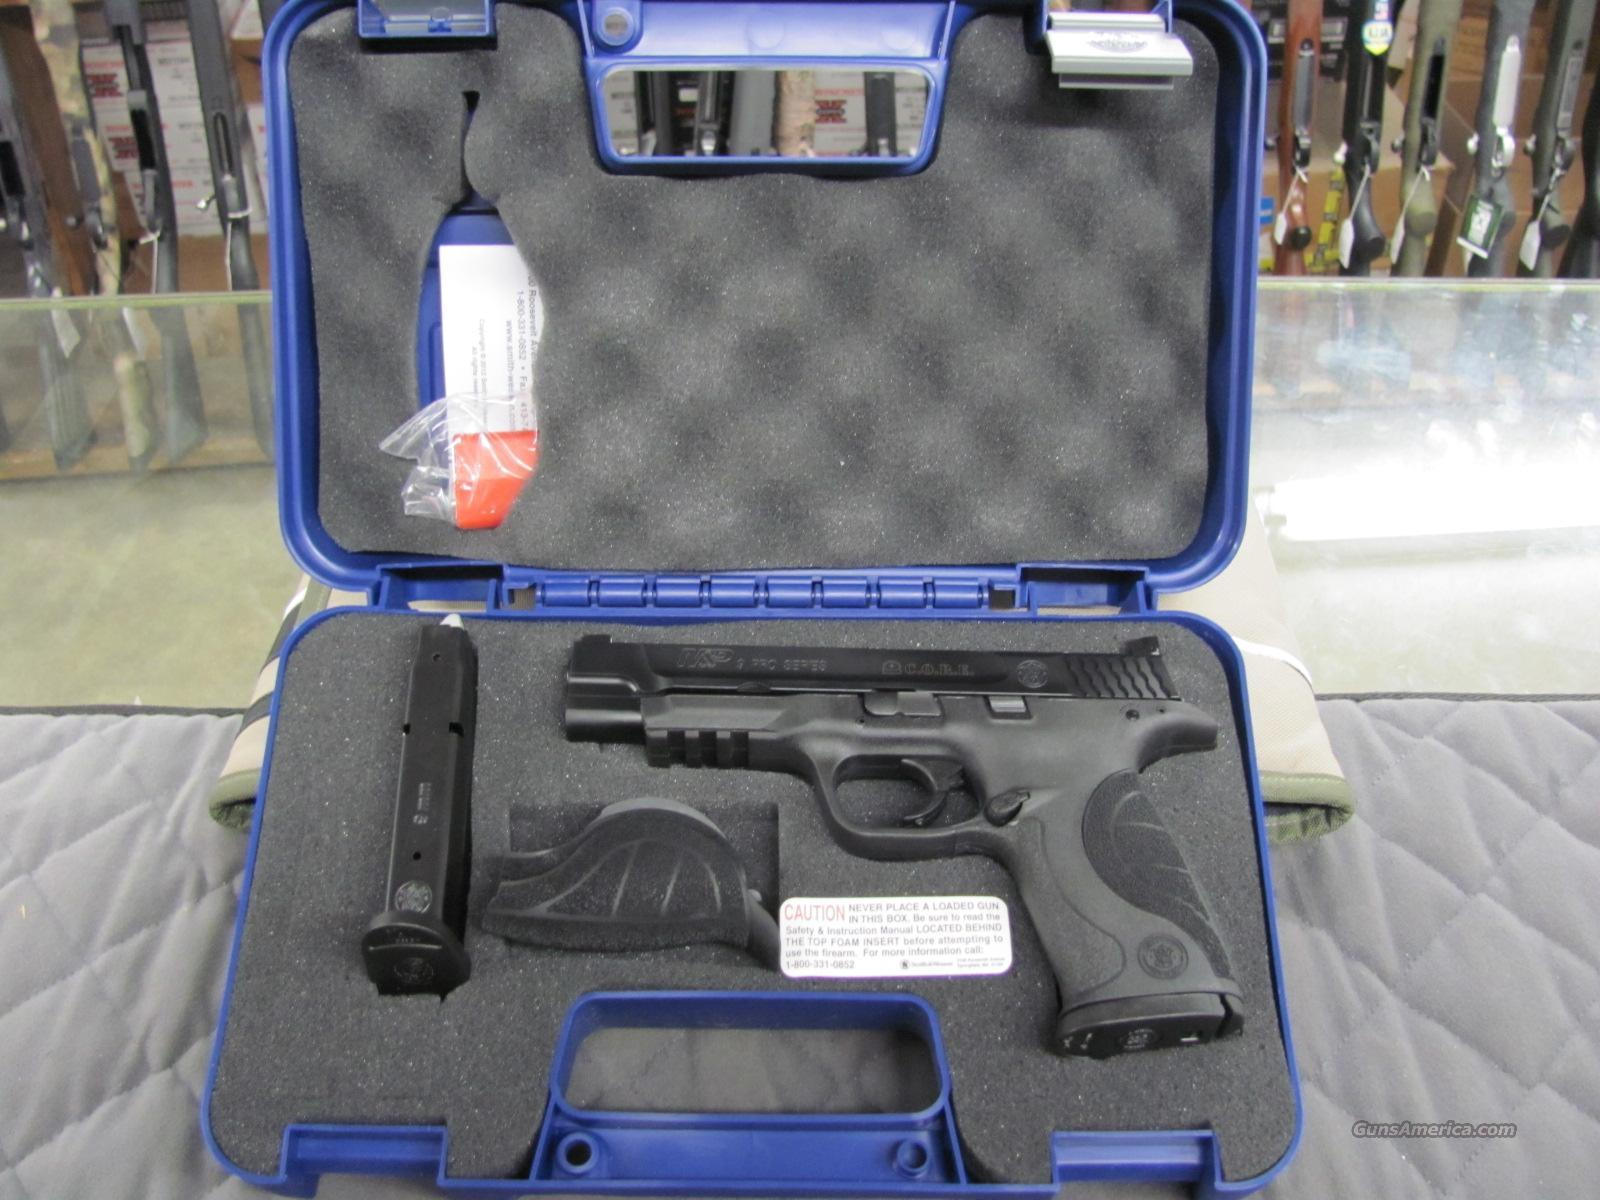 Smith & Wesson M&P40L Pro Series C.O.R.E. 40 S&W  **NEW**  Guns > Pistols > Smith & Wesson Pistols - Autos > Polymer Frame